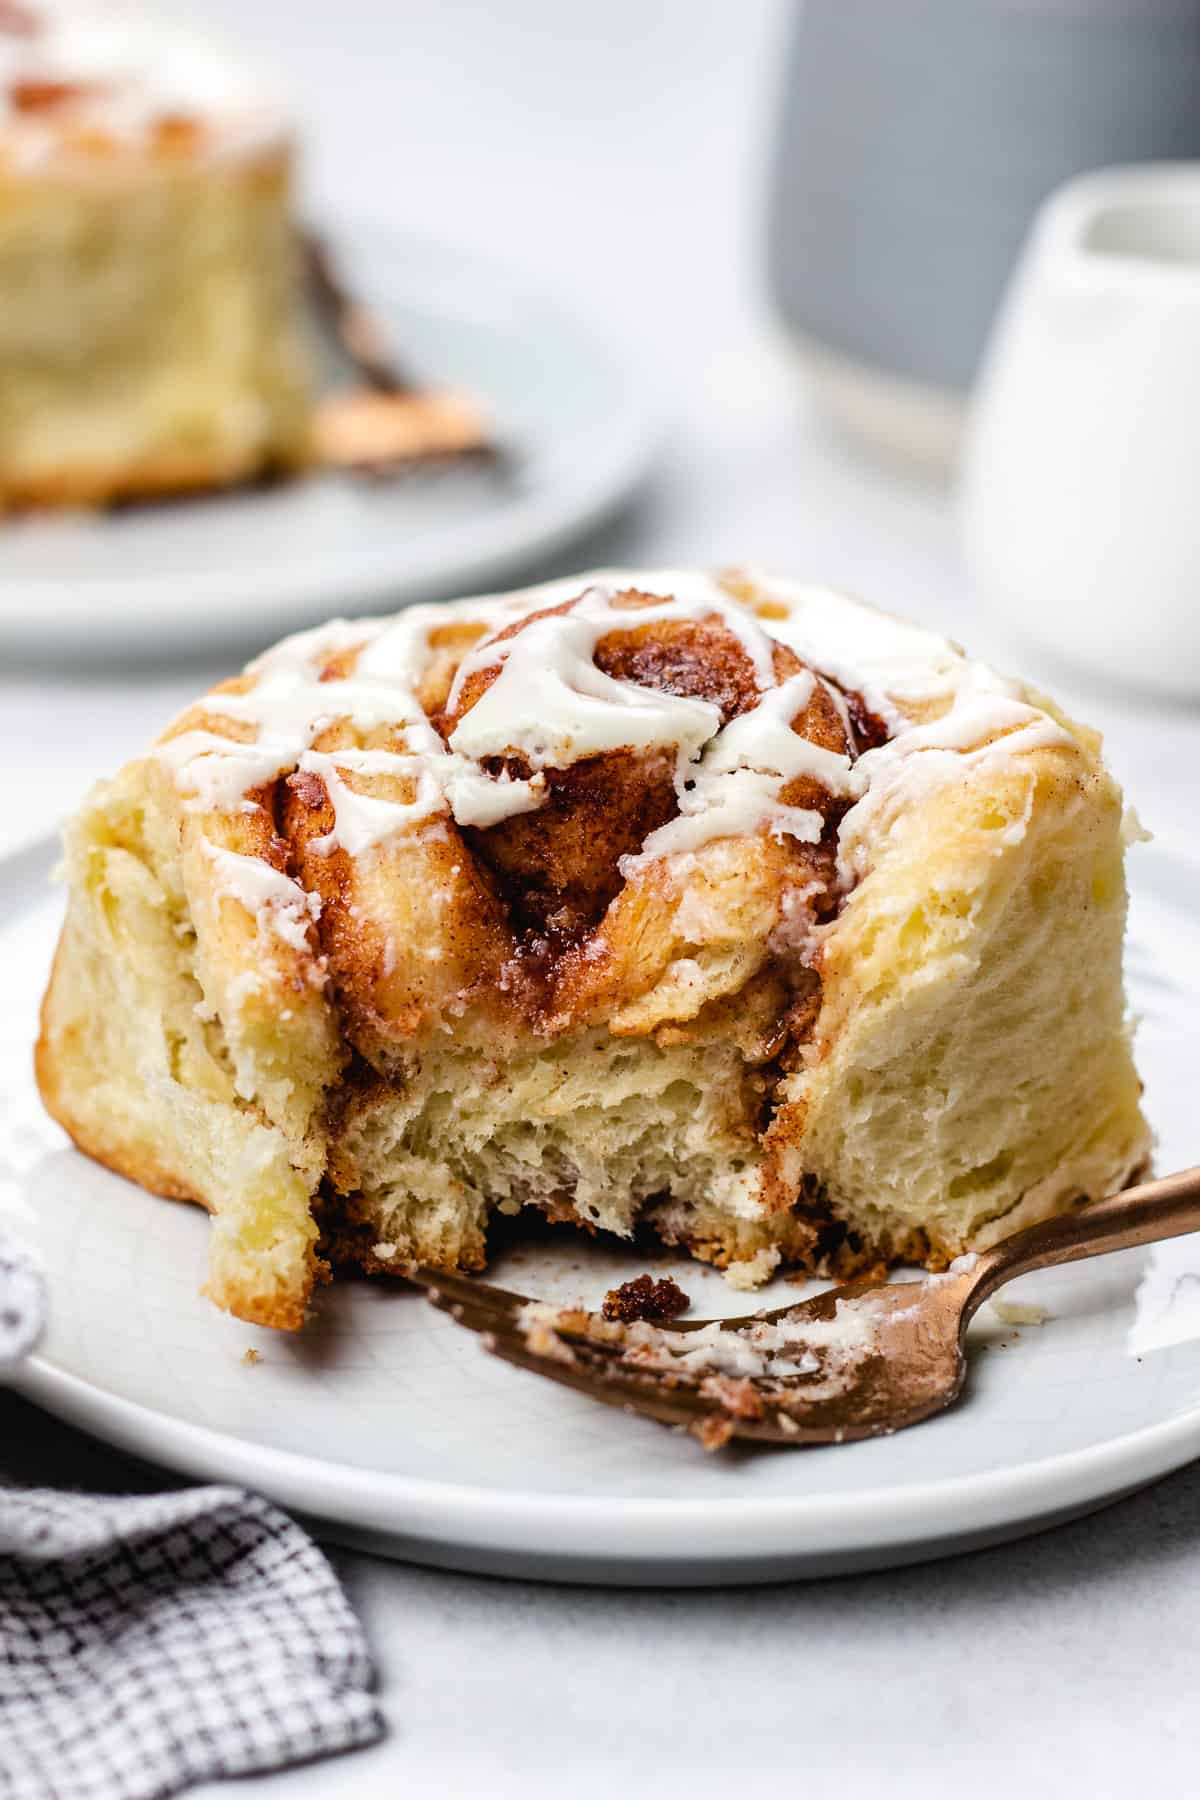 Cinnamon roll topped with icing on a plate with a fork.